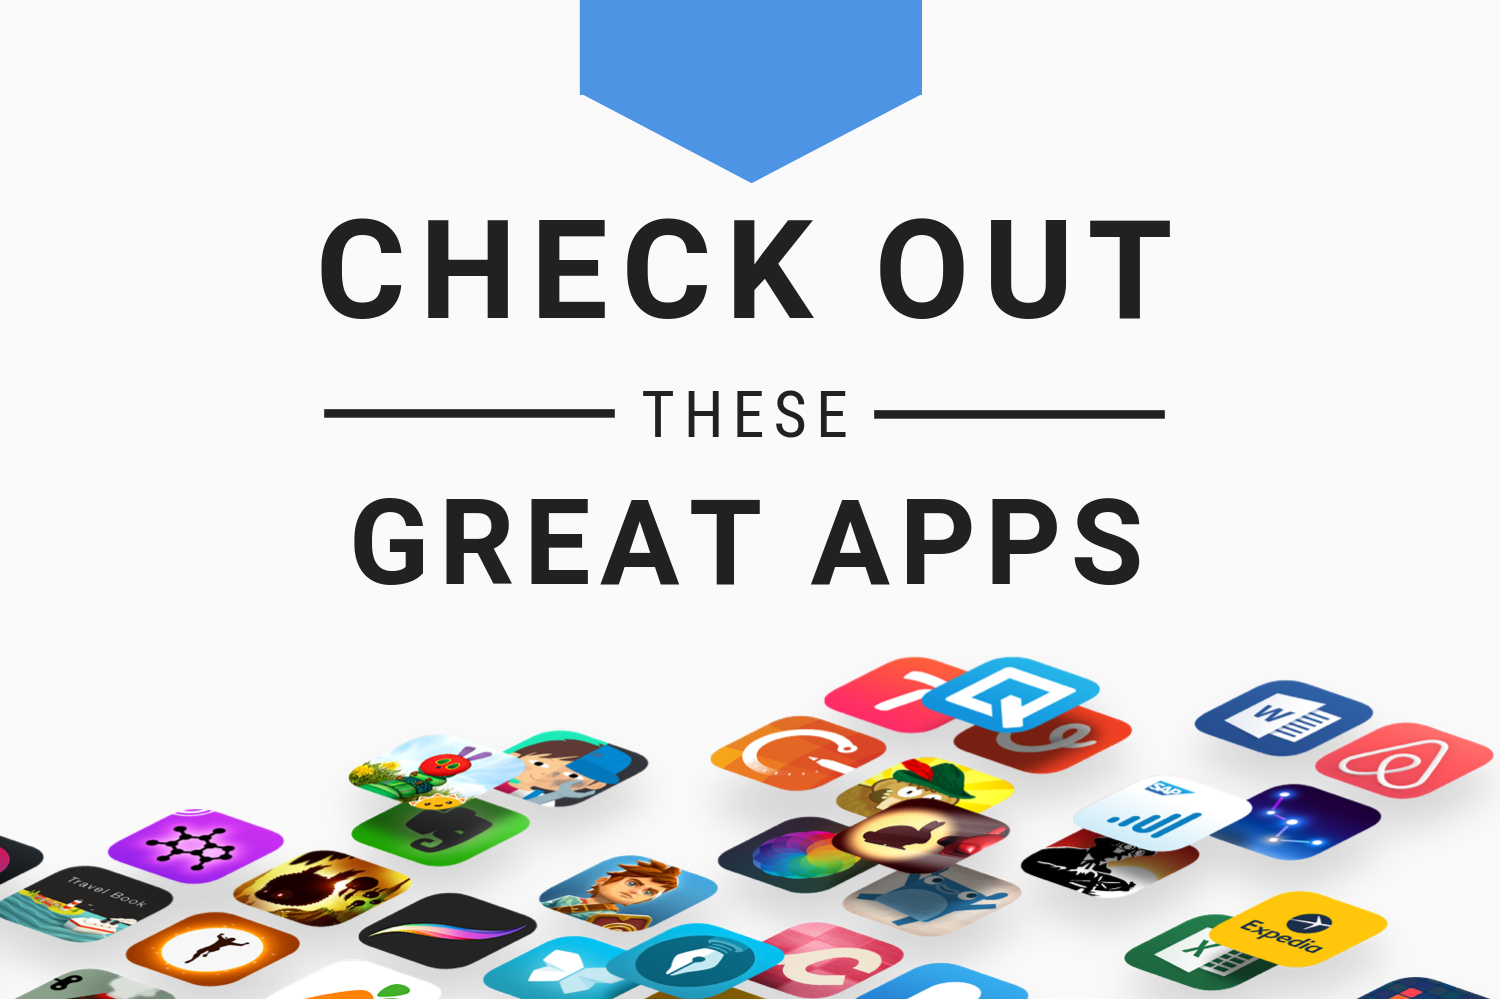 Space, Smappy, StretchMinder, and other apps to check out this weekend